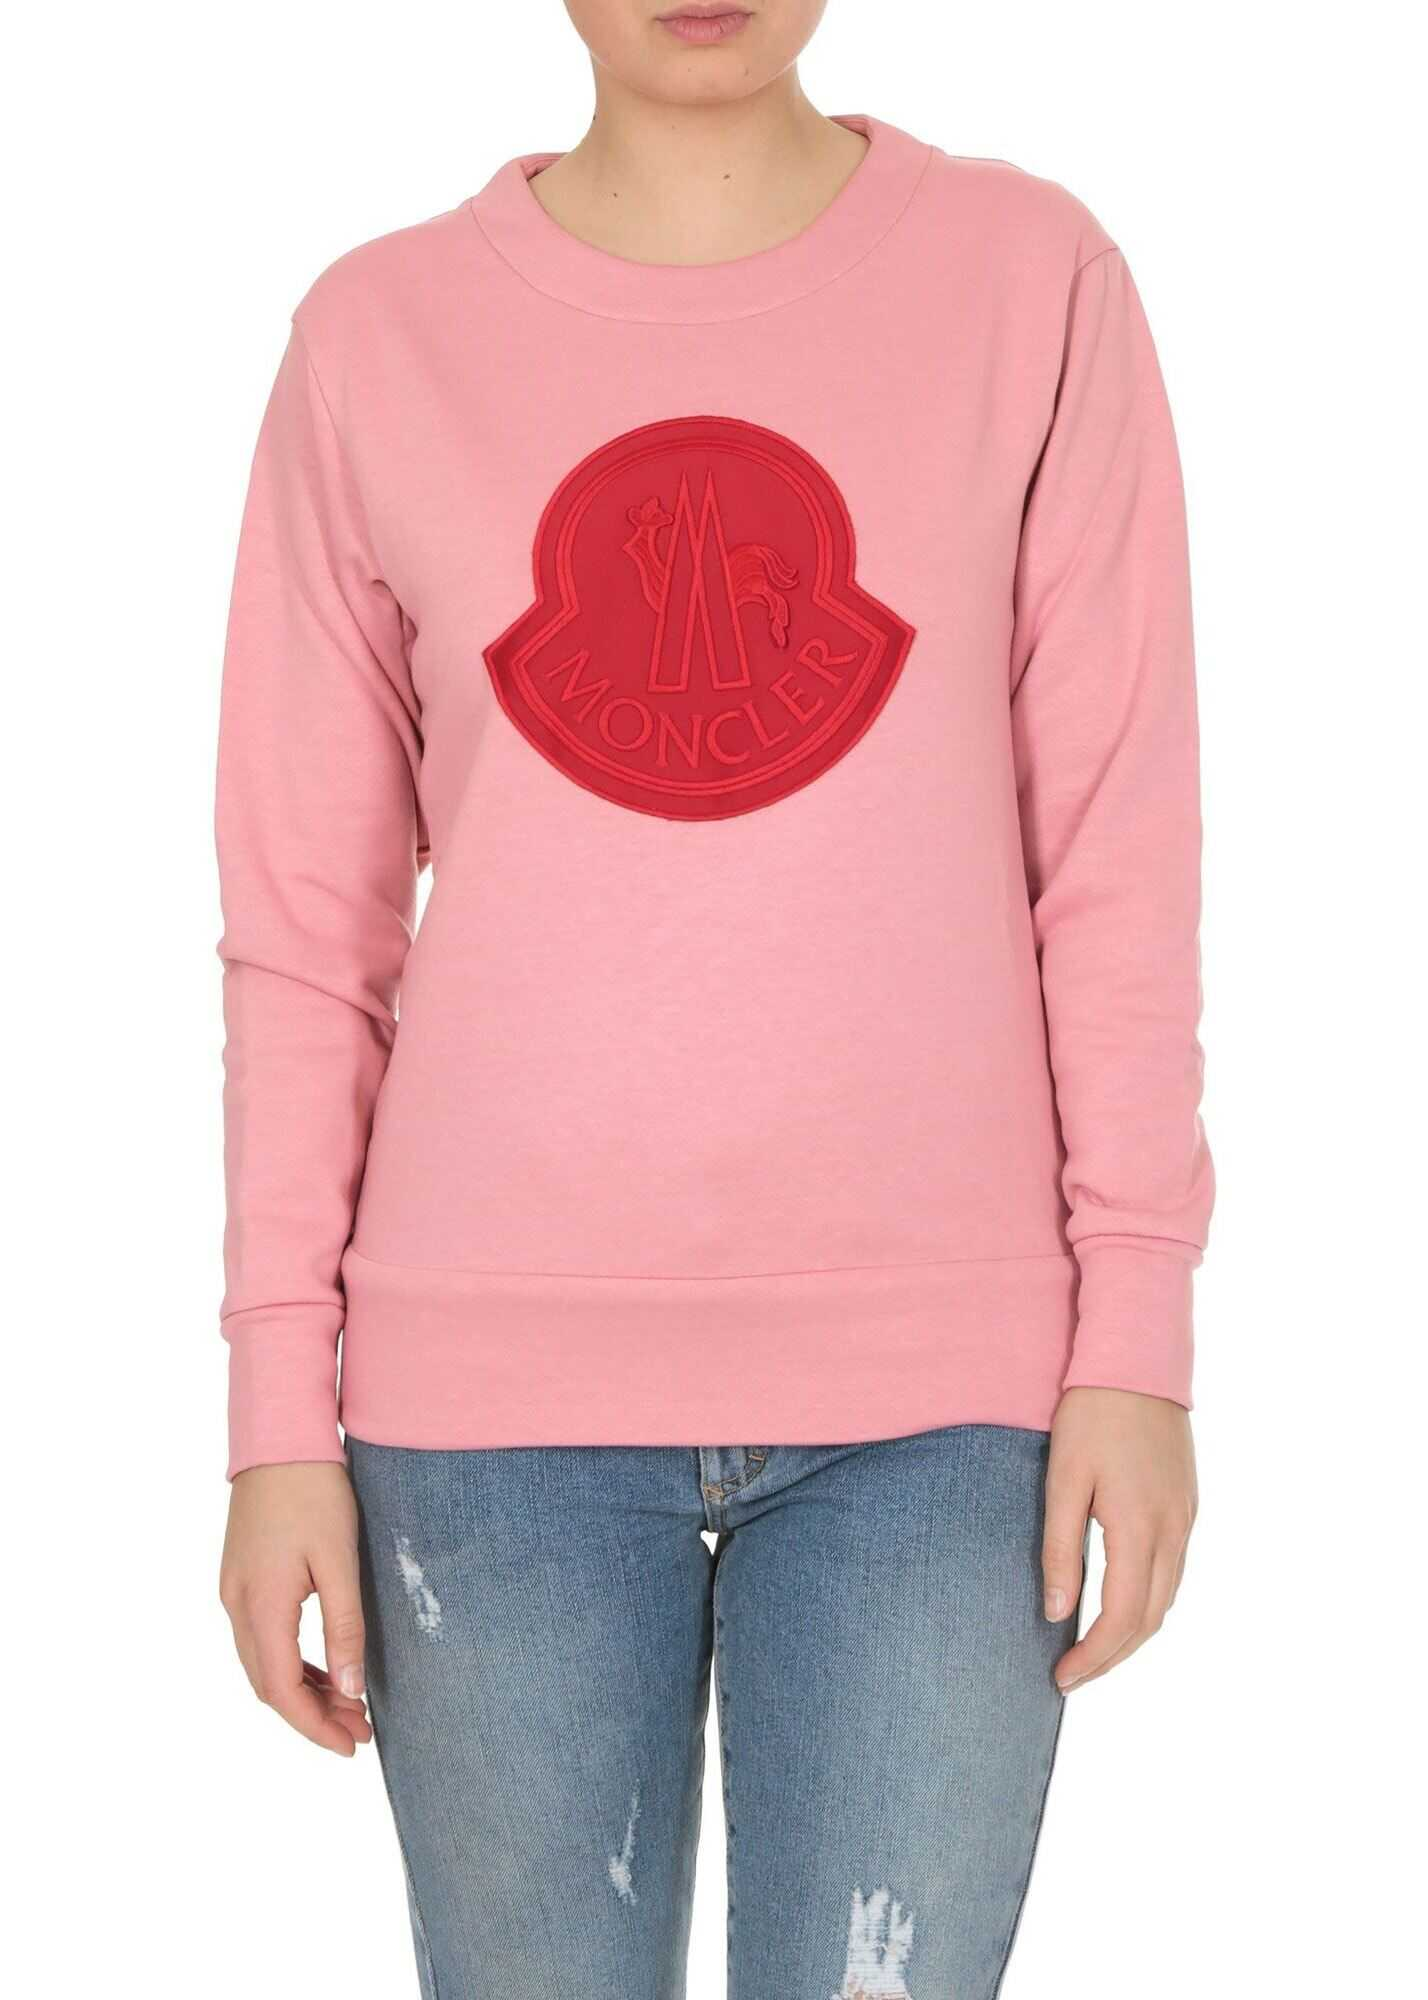 Moncler Red Maxi Patch Sweatshirt In Pink Pink